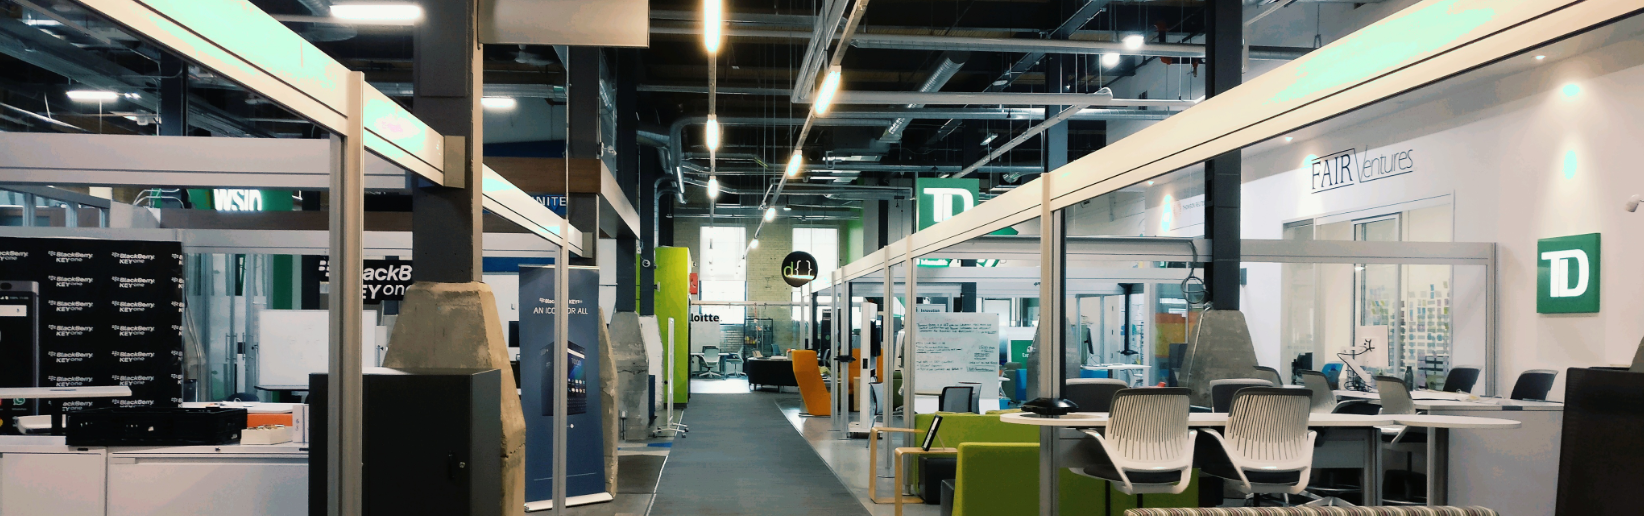 Innovation Alley at the Communitech Hub in Kitchener